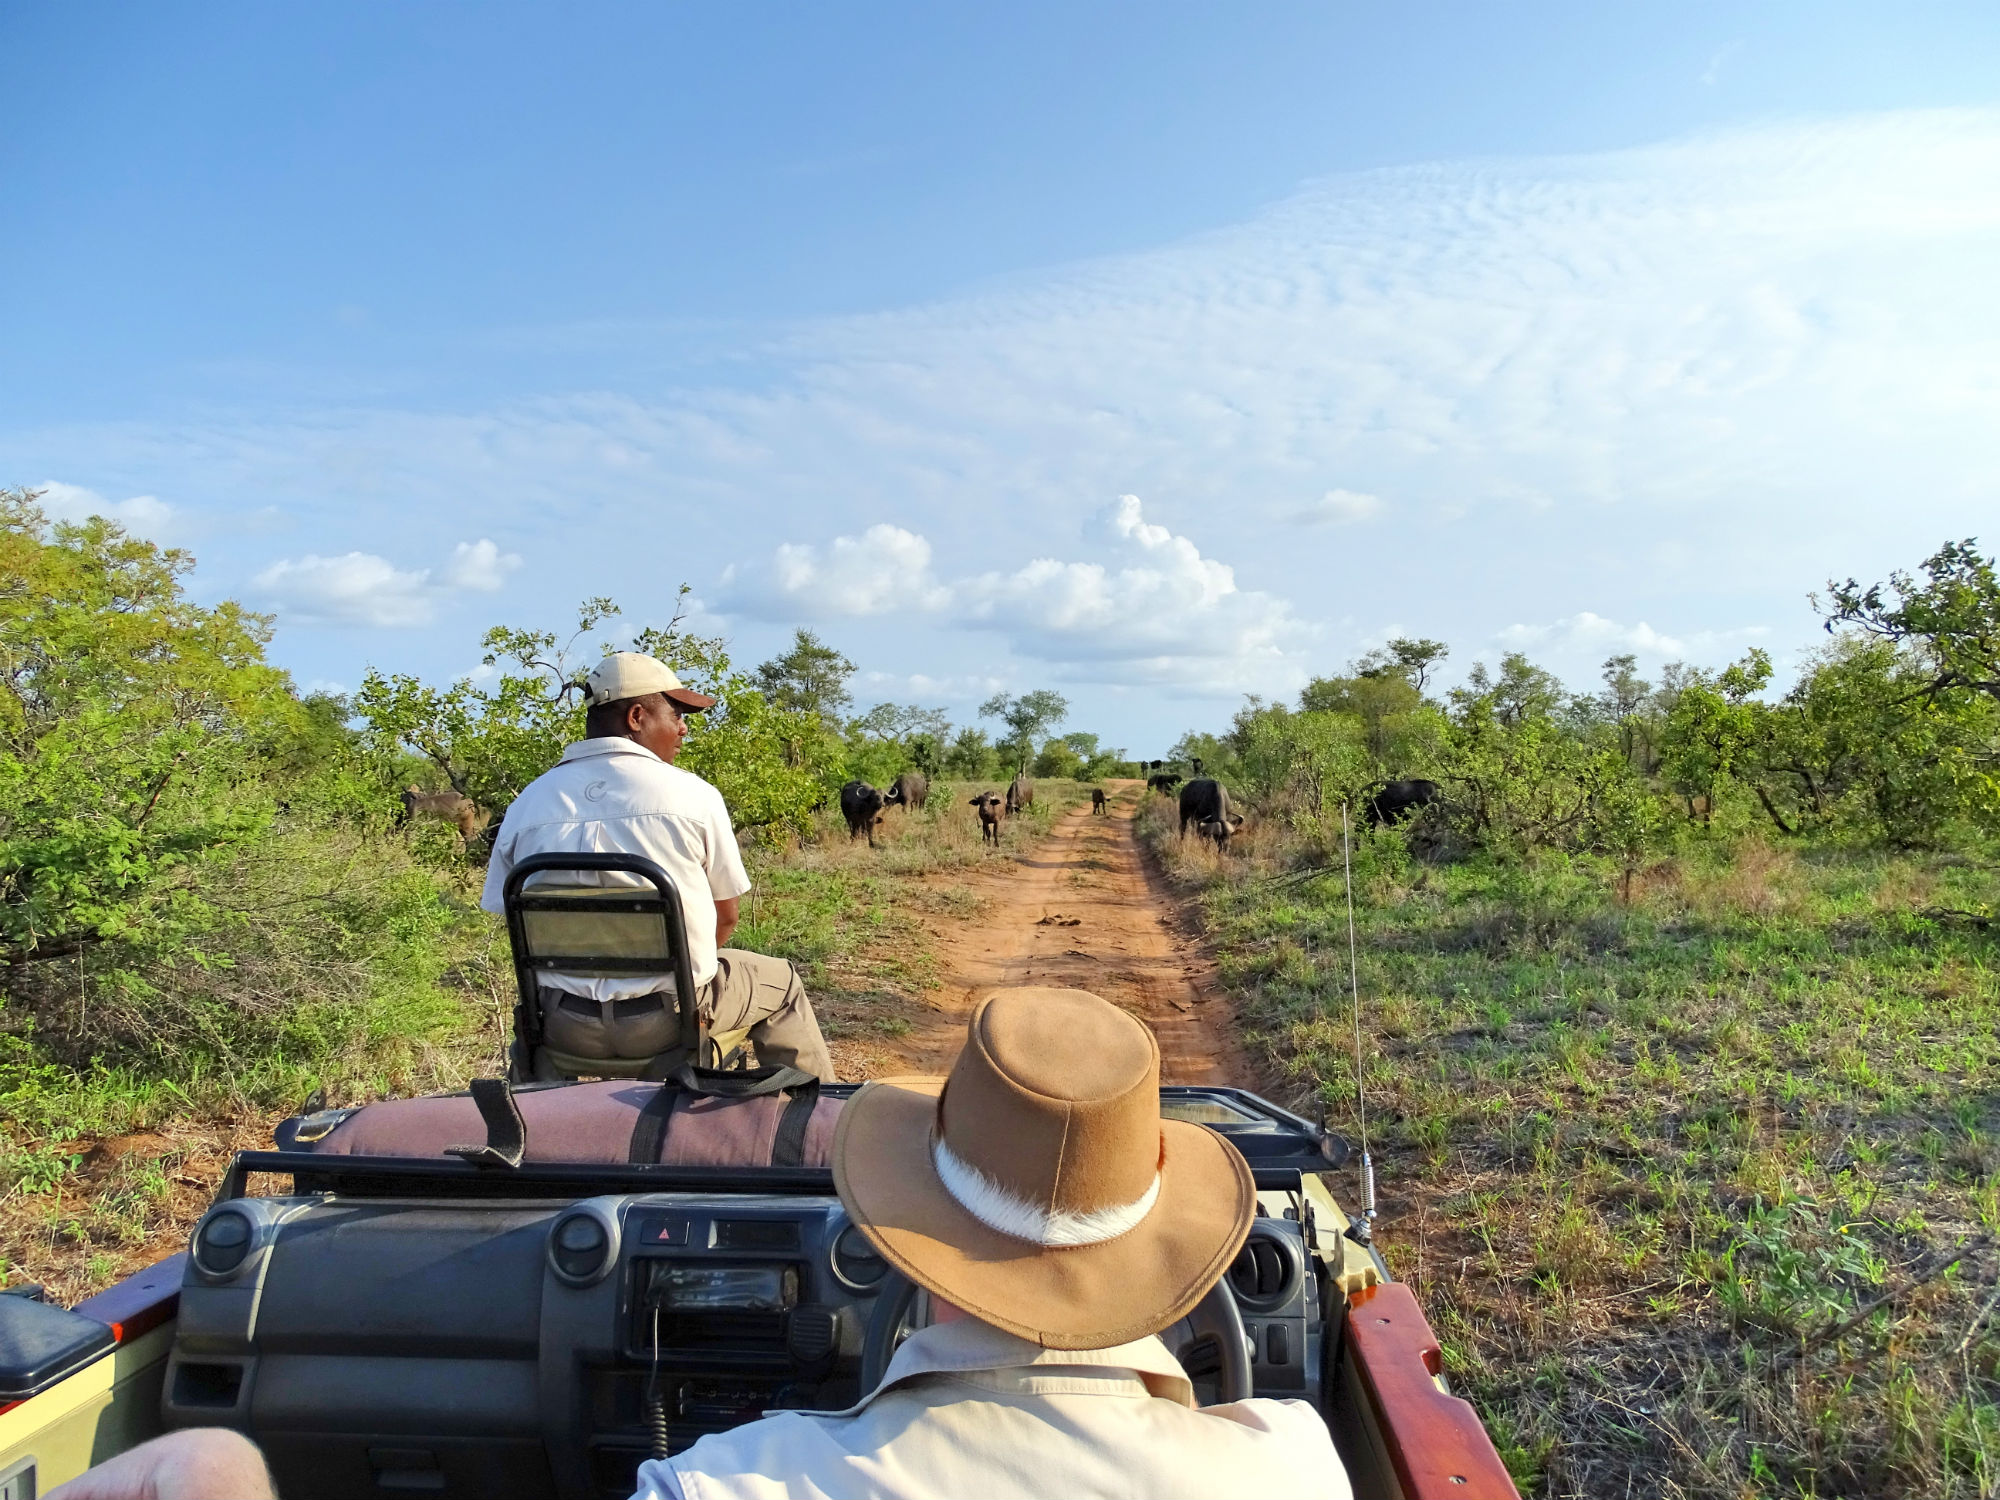 Game Drive im Krüger National Park